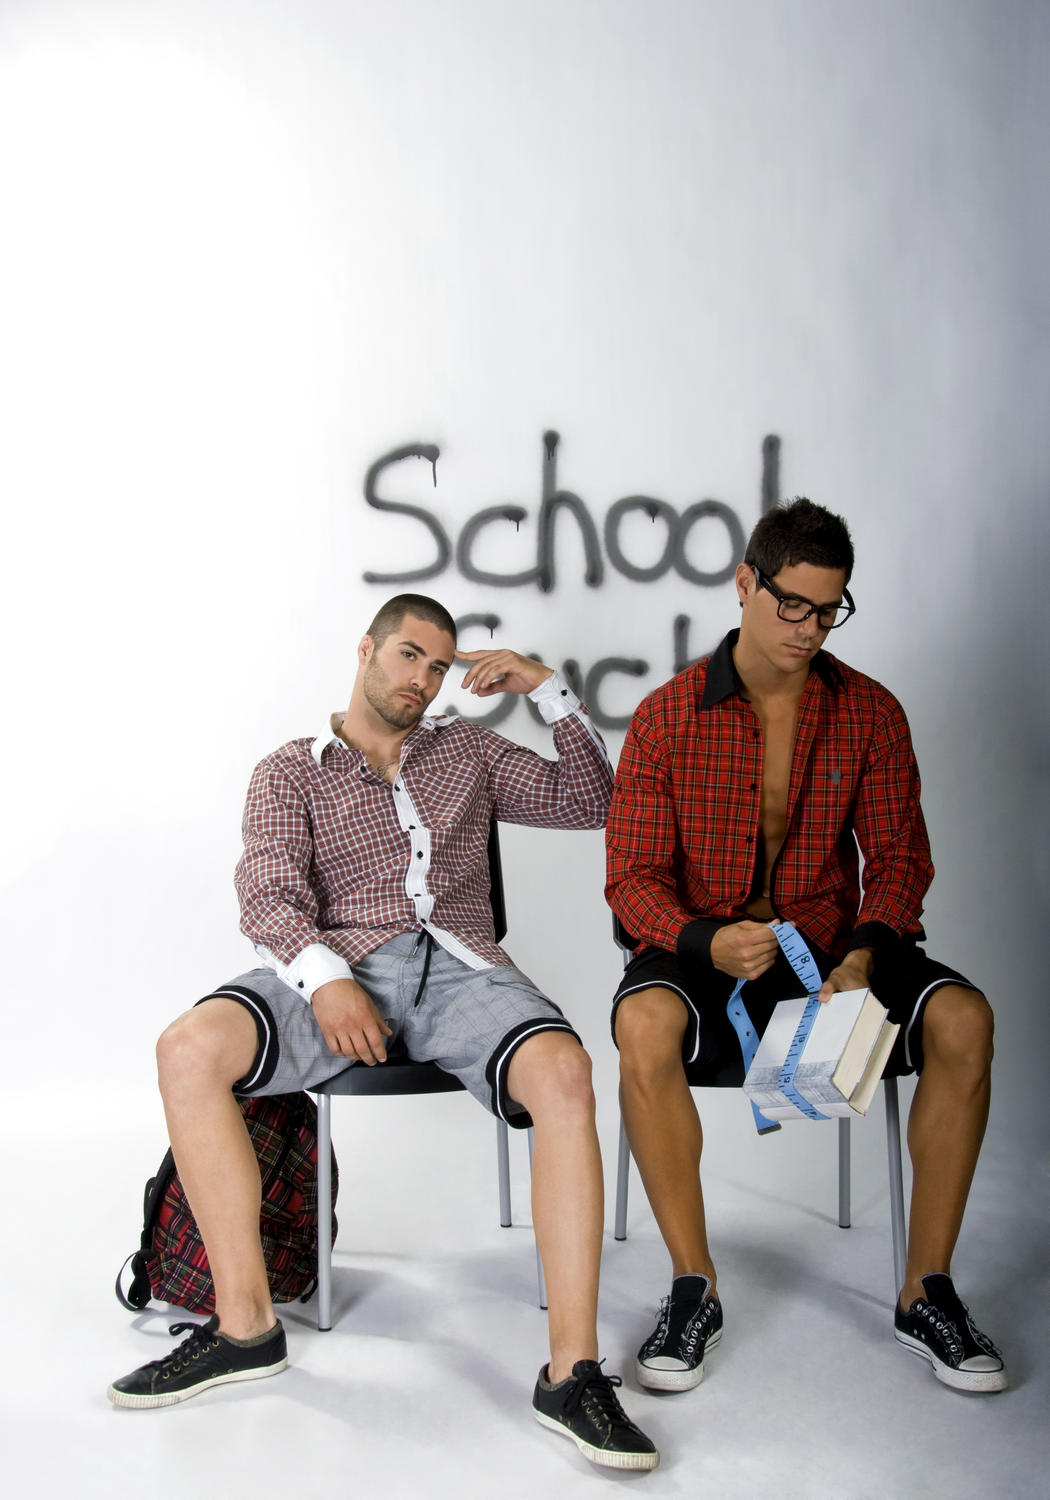 Back To School In Style, For Less With Andrew Christian